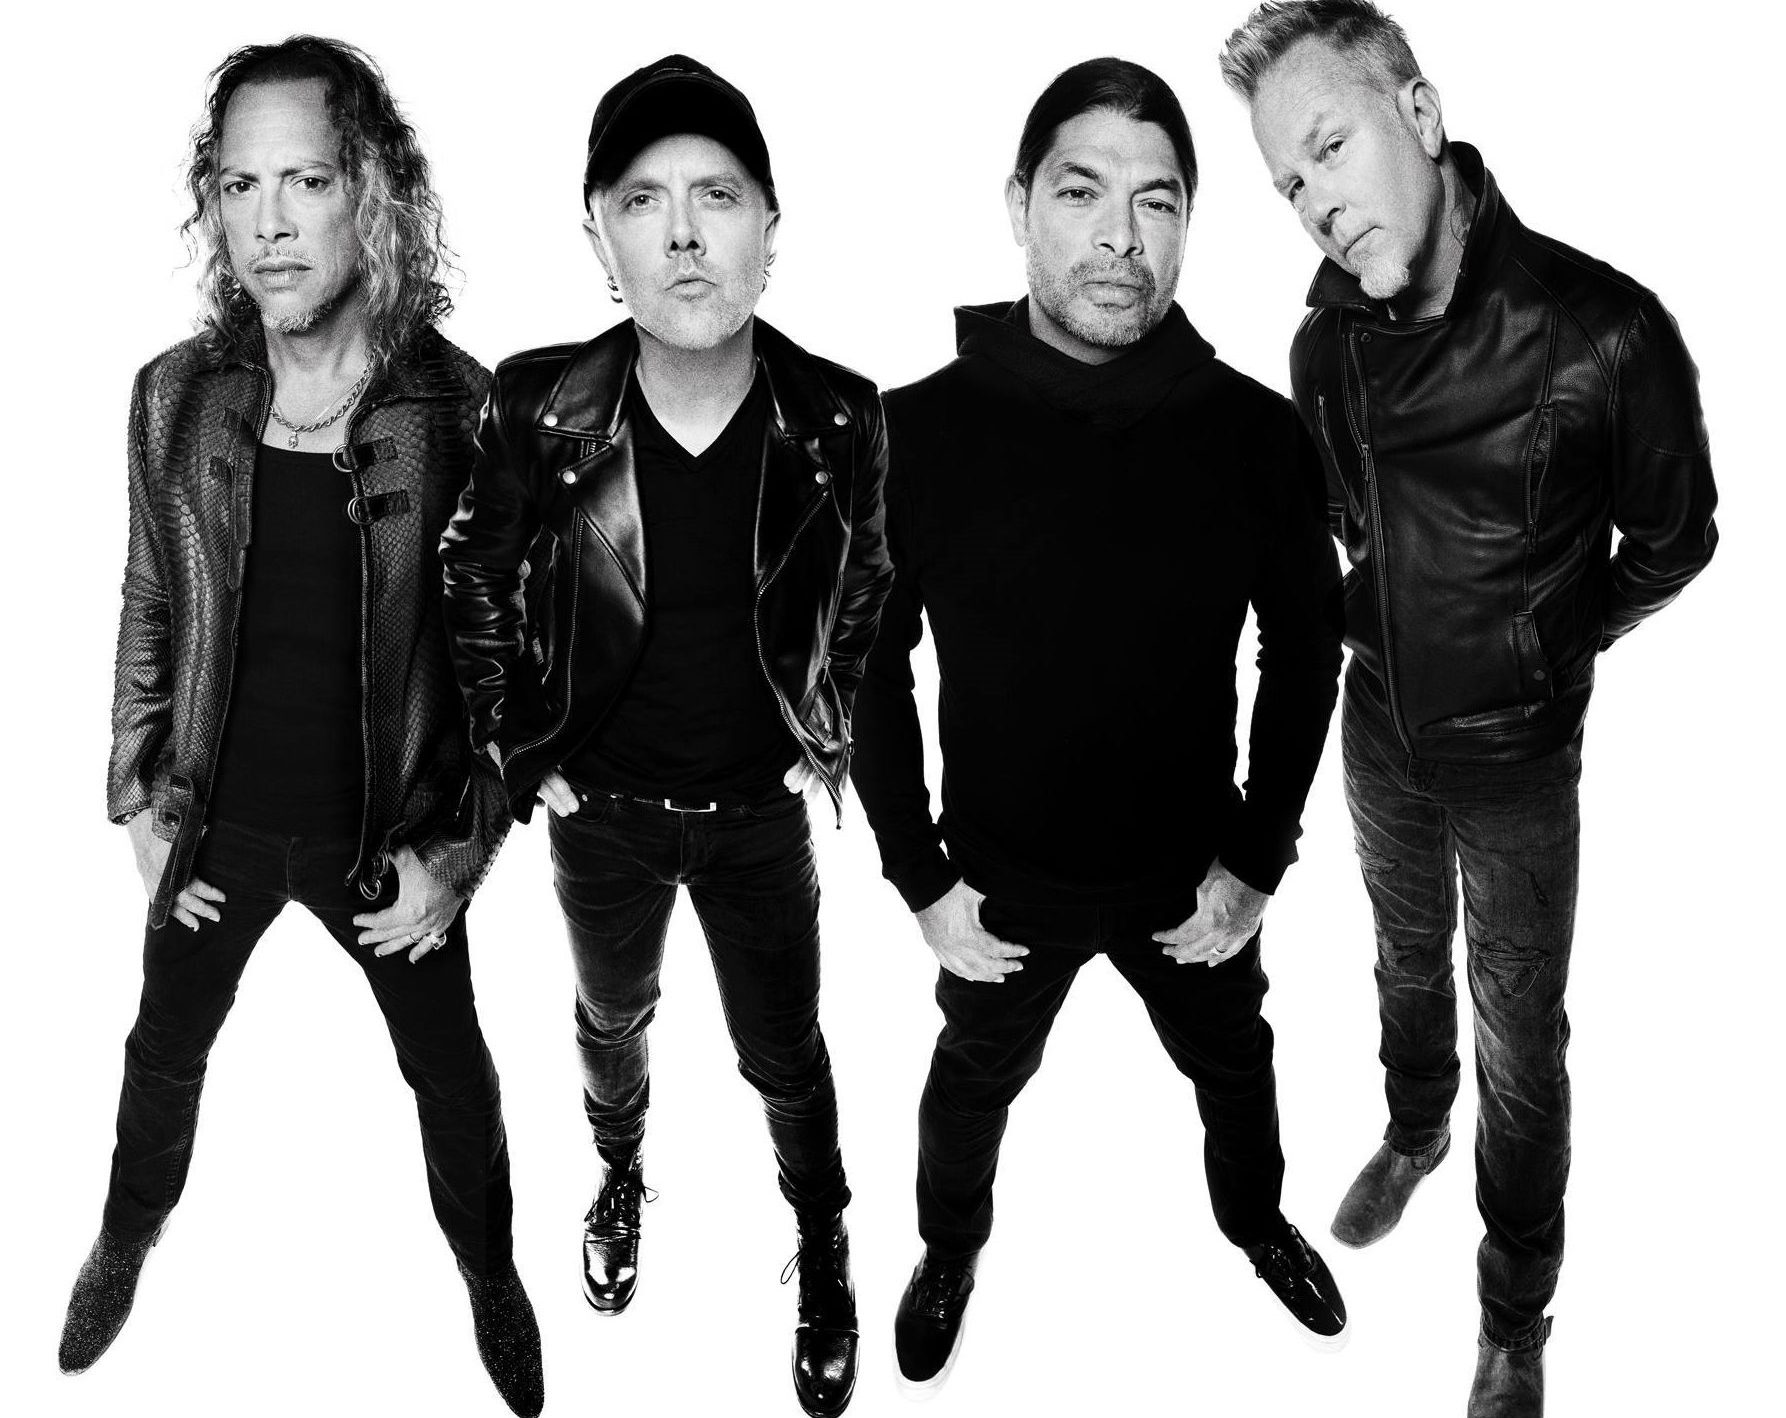 How would Metallica fare as a Super Bowl Halftime act?